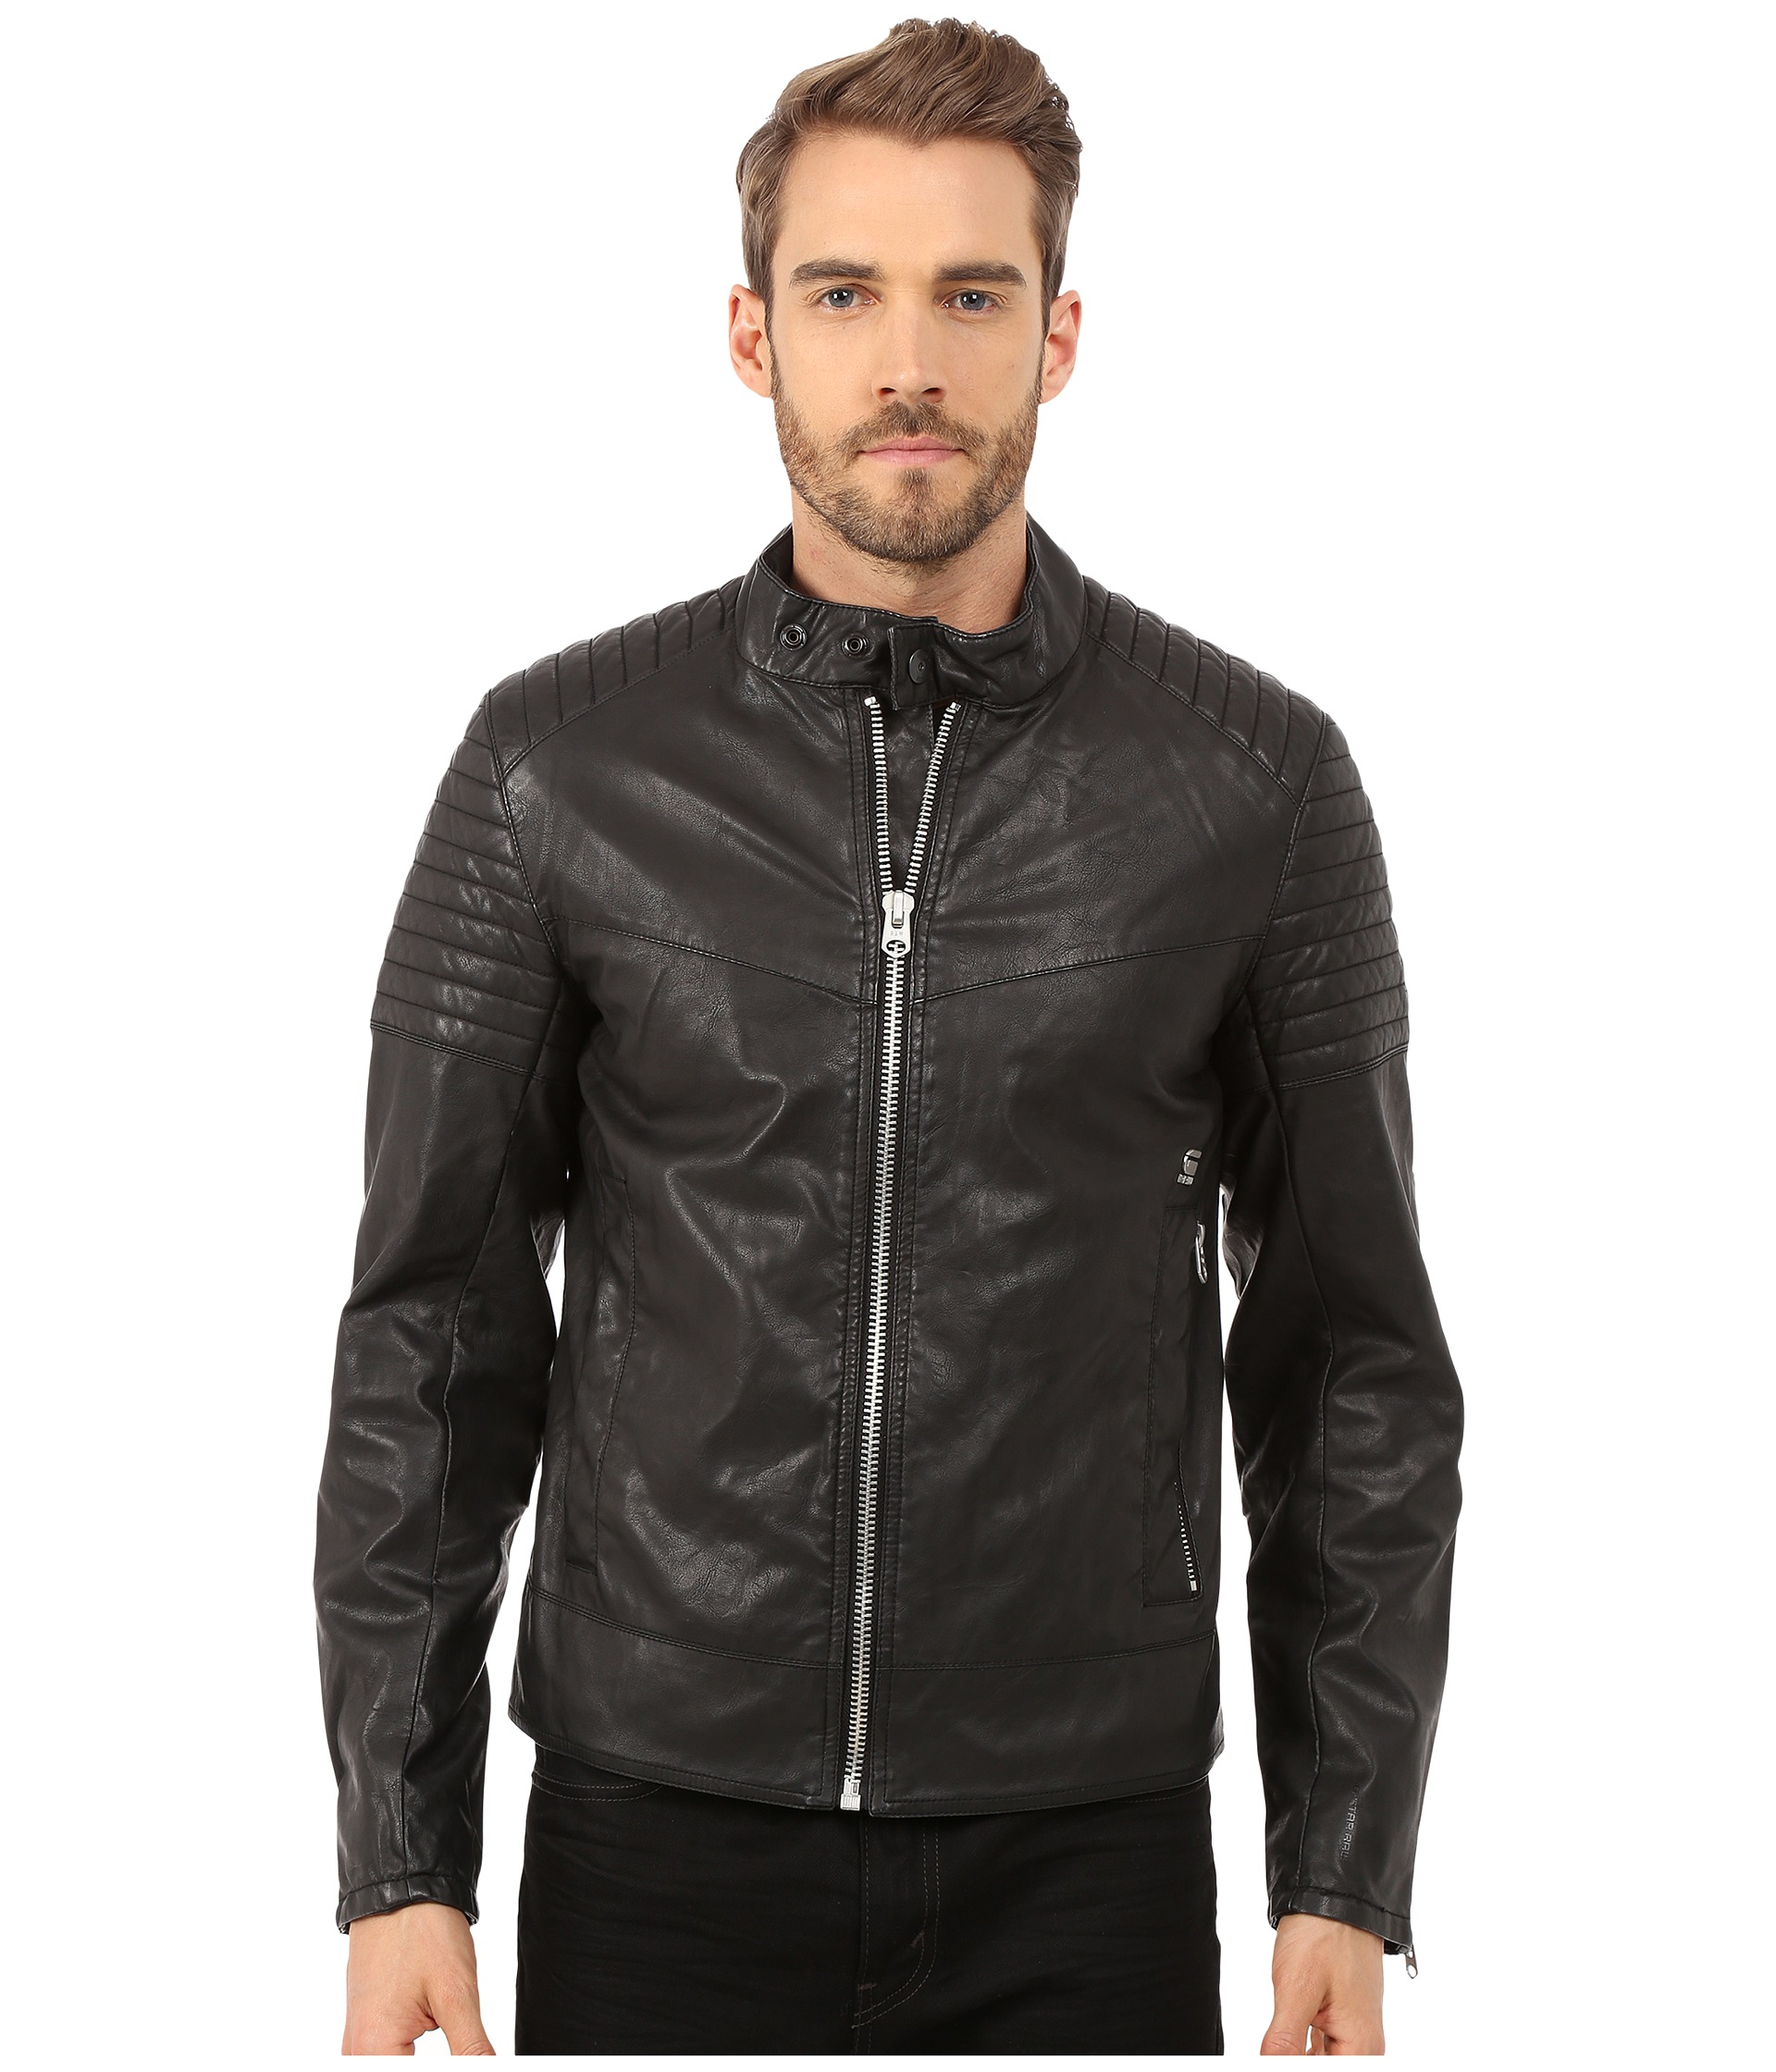 fcd572fde1c5e G-star Raw Attacc Jacket In Black For Men